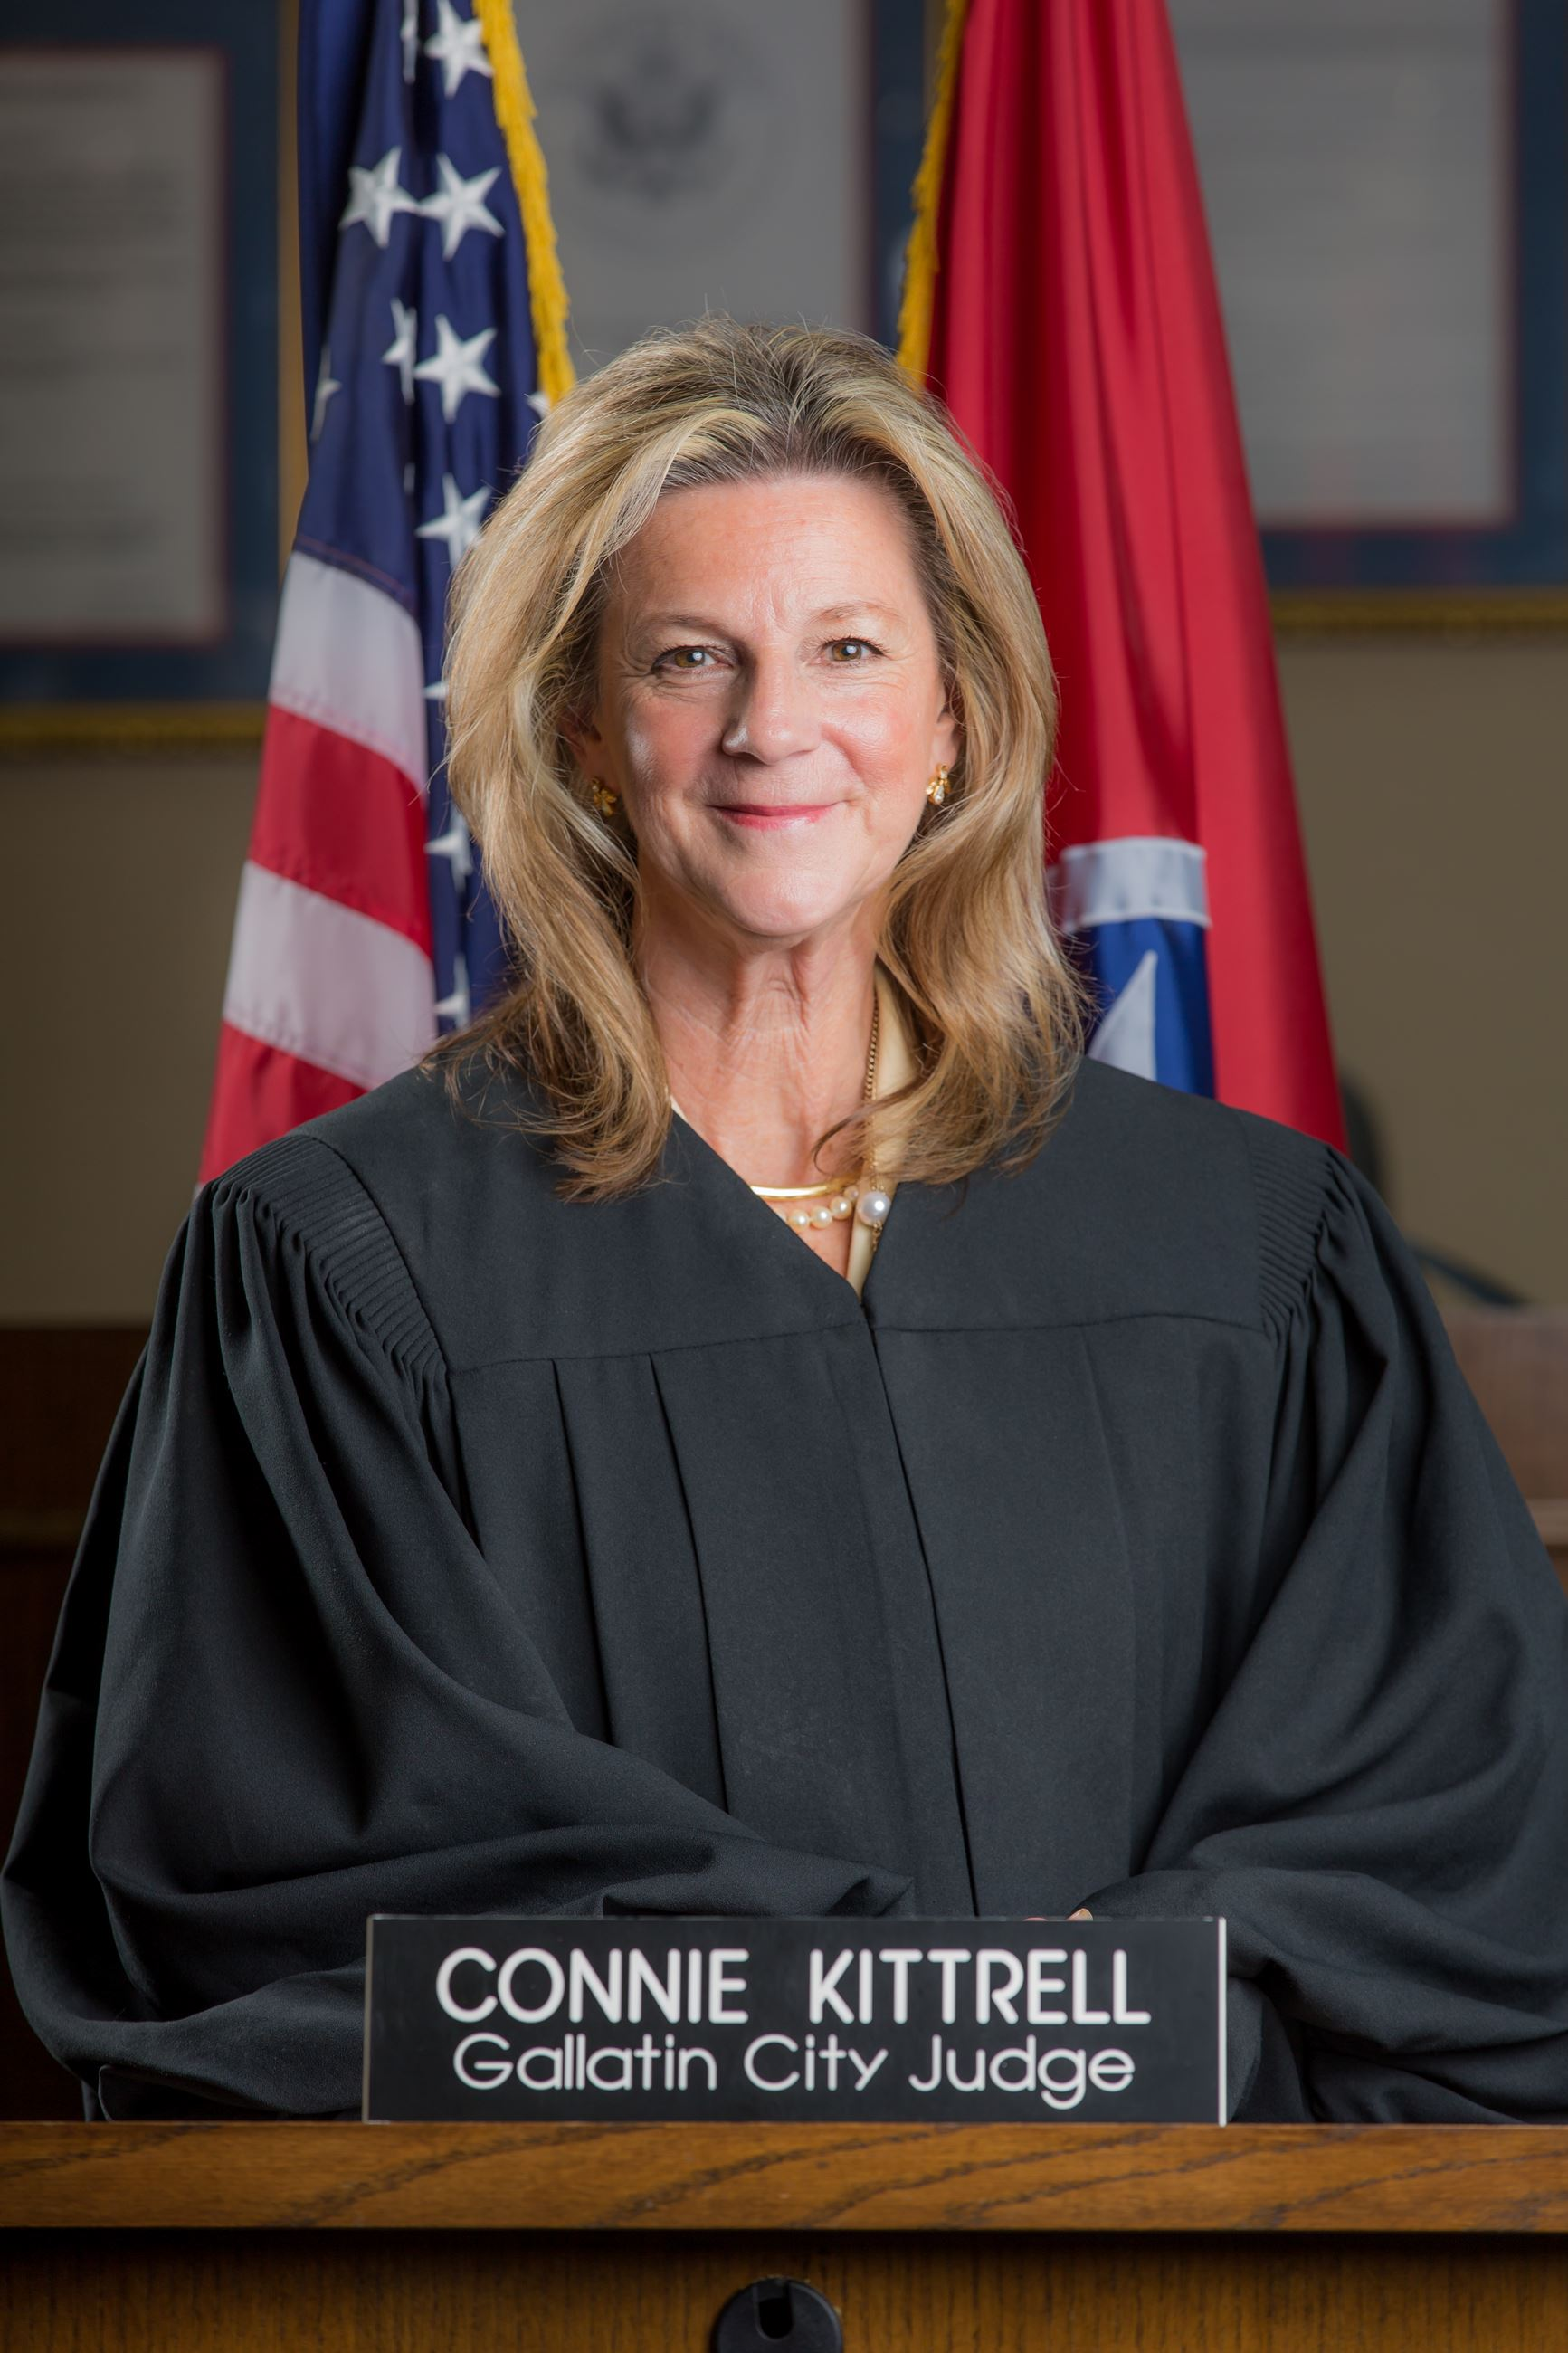 Connie Kittrell, City Judge/City Recorder